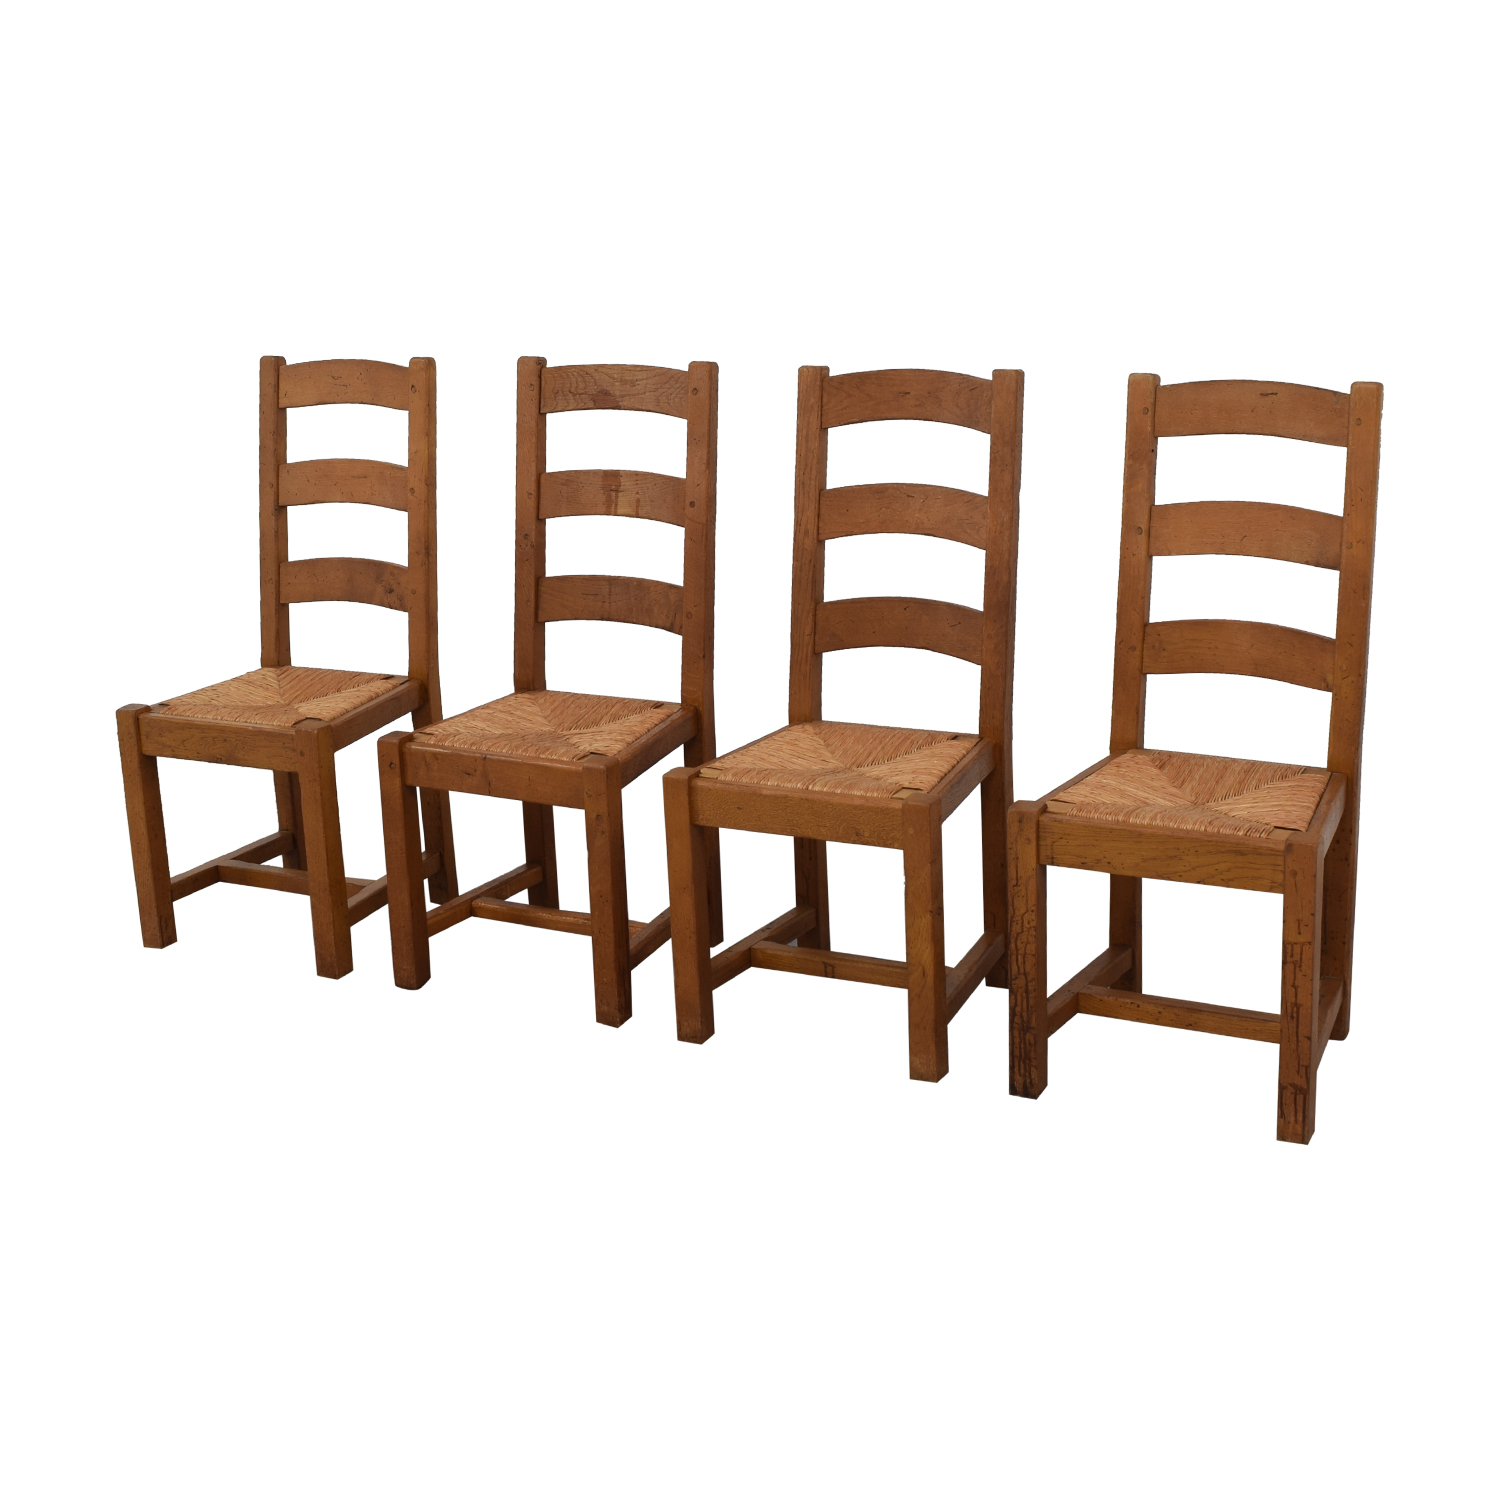 shop Crate & Barrel French Farm Dining Chairs Crate & Barrel Dining Chairs